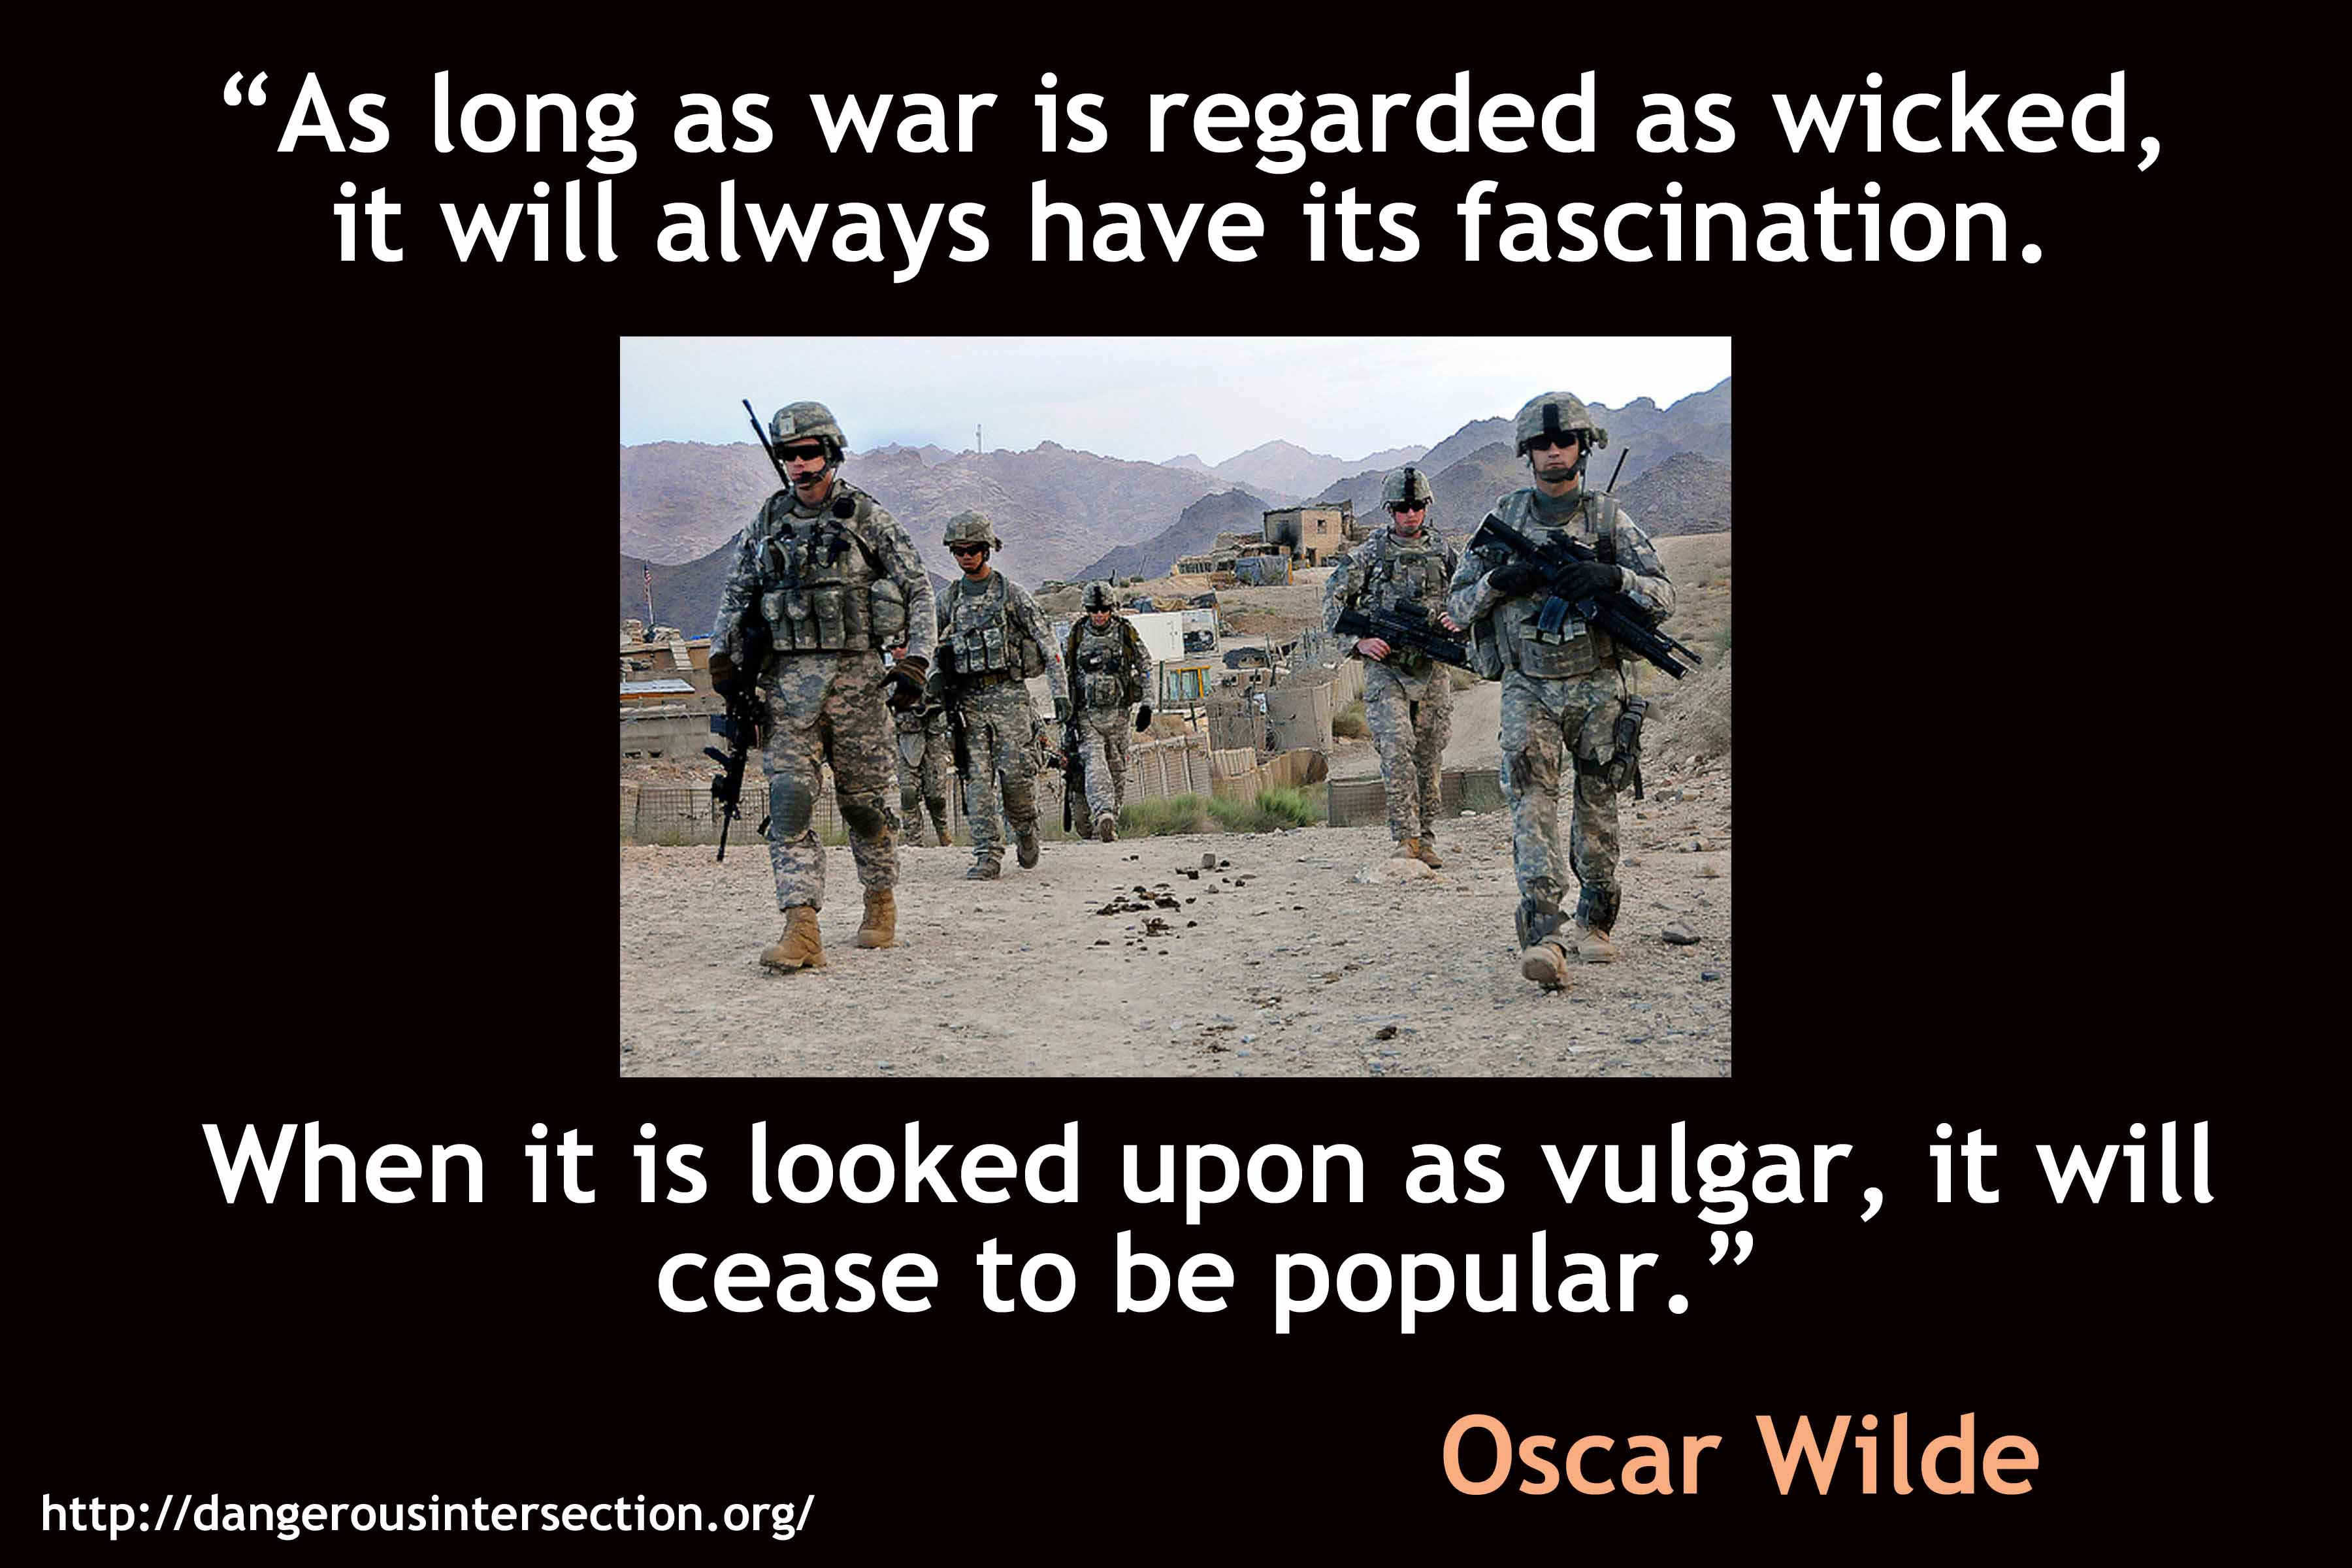 Quotes About War Quotes  Dangerous Intersection